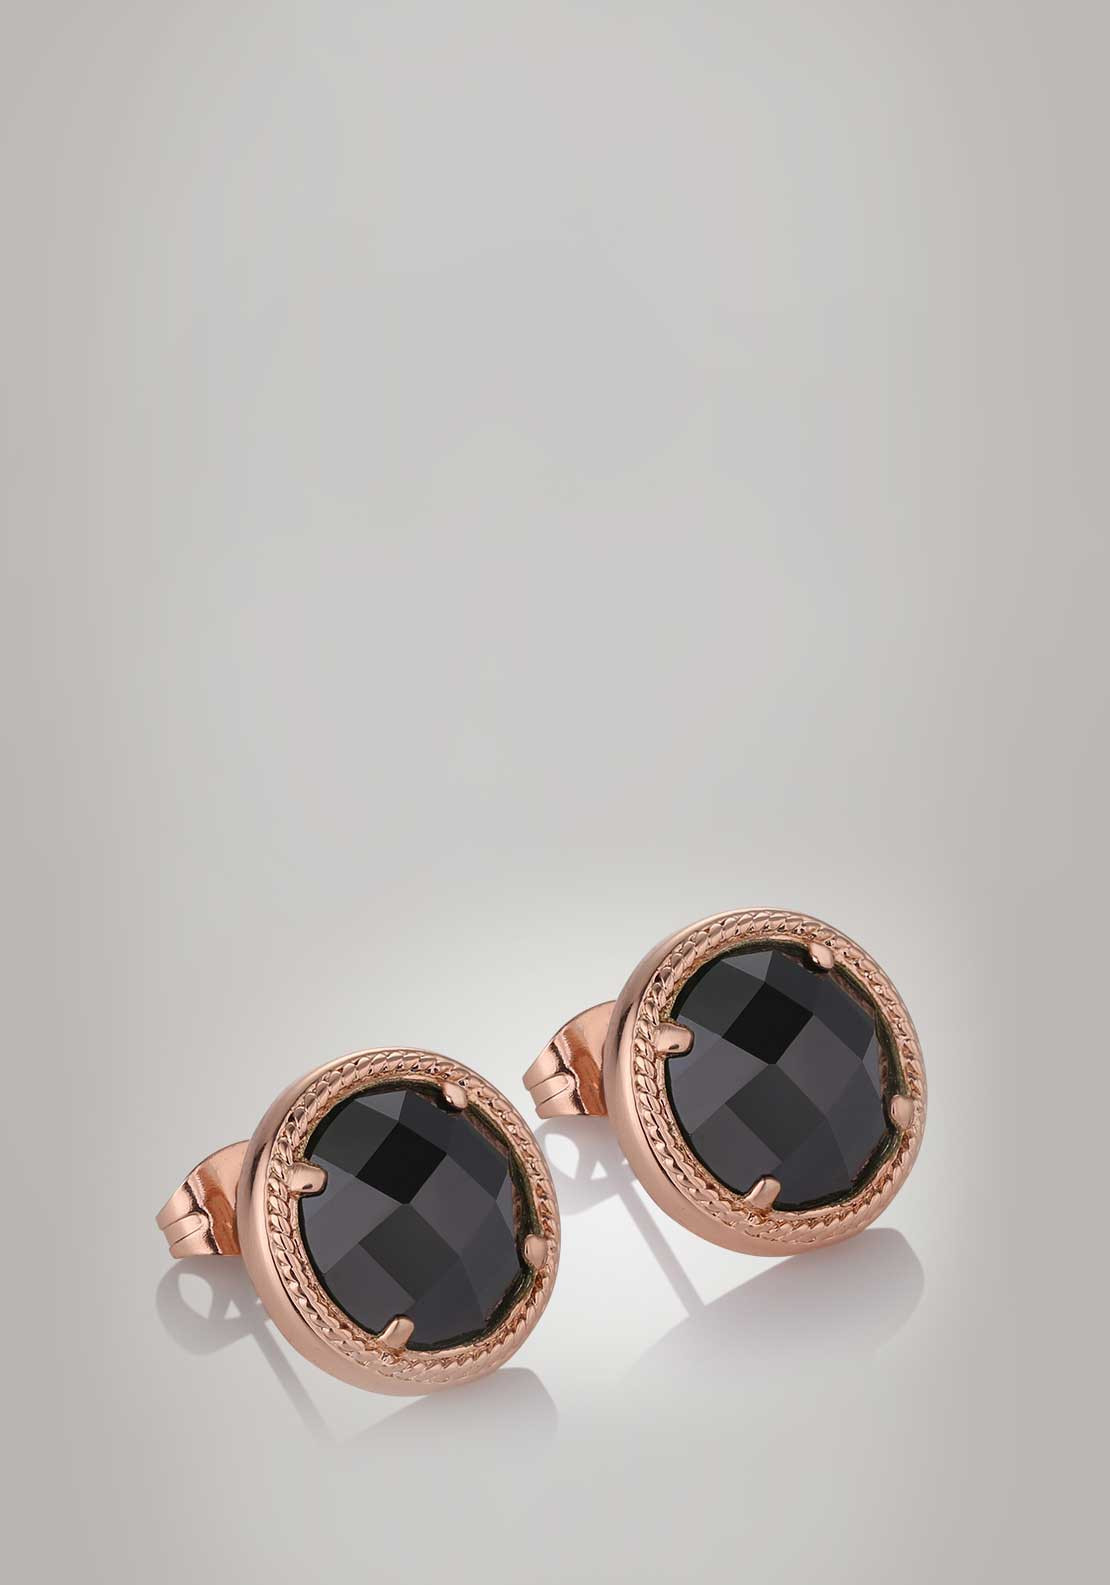 Newbridge Silverware Guinness Black Crystal Earrings, Rose Gold